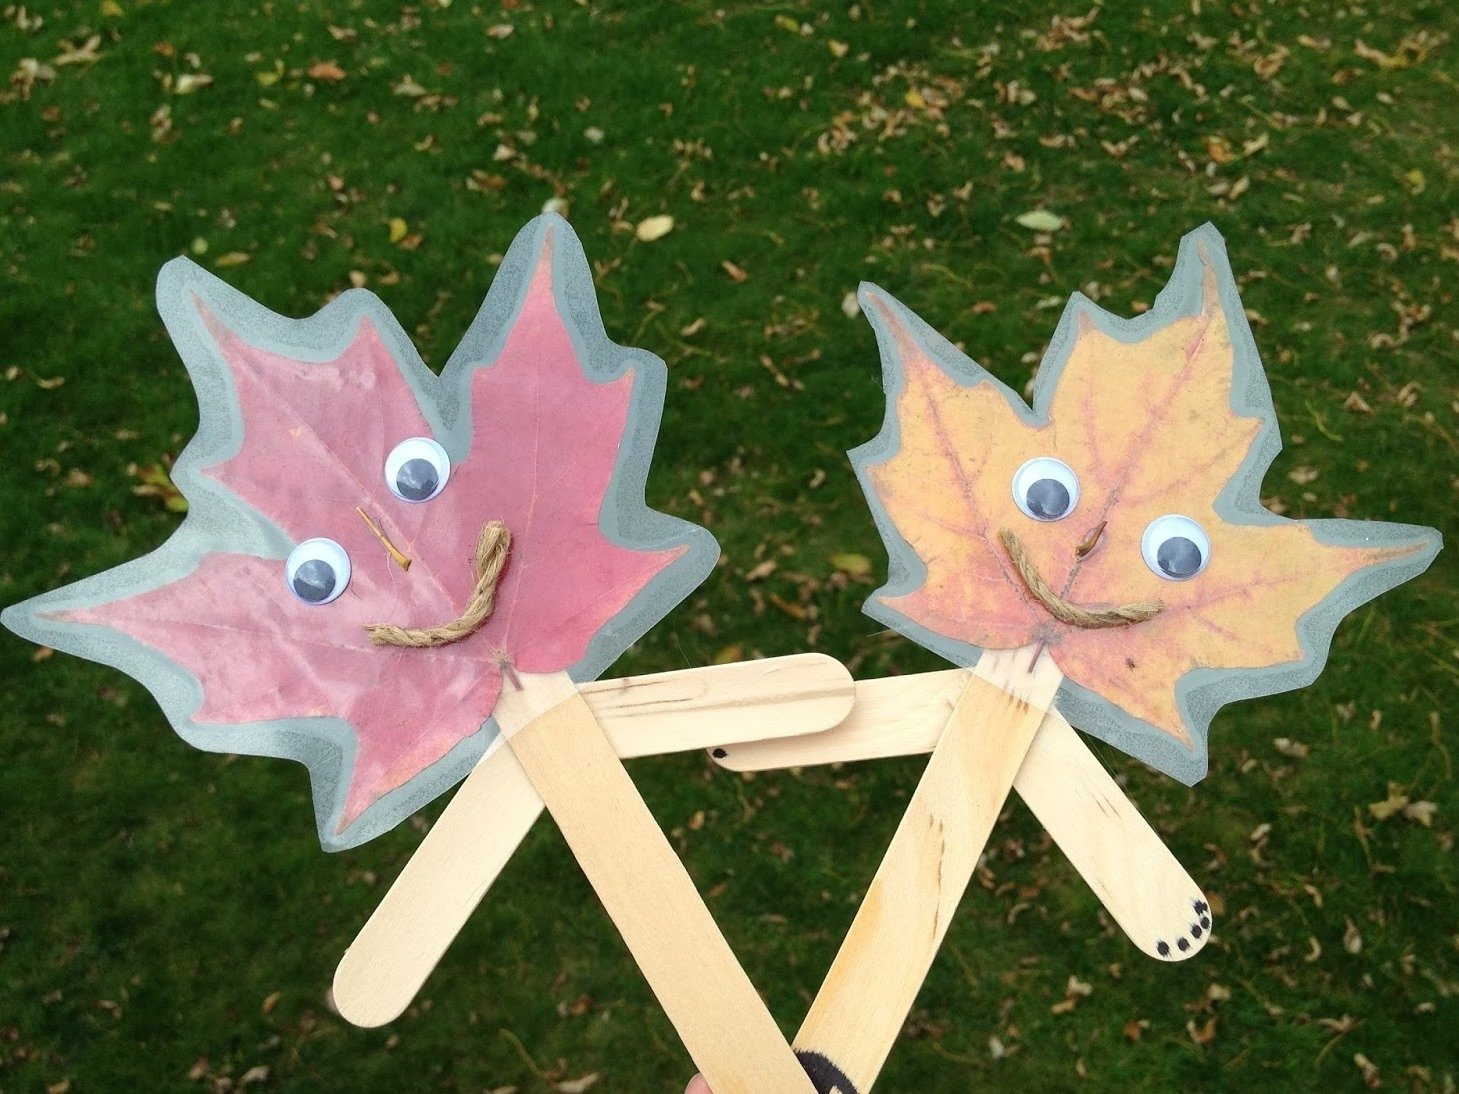 10 Ideal Craft Ideas For 2 Year Olds fall crafts for 2 year olds find craft ideas 2020